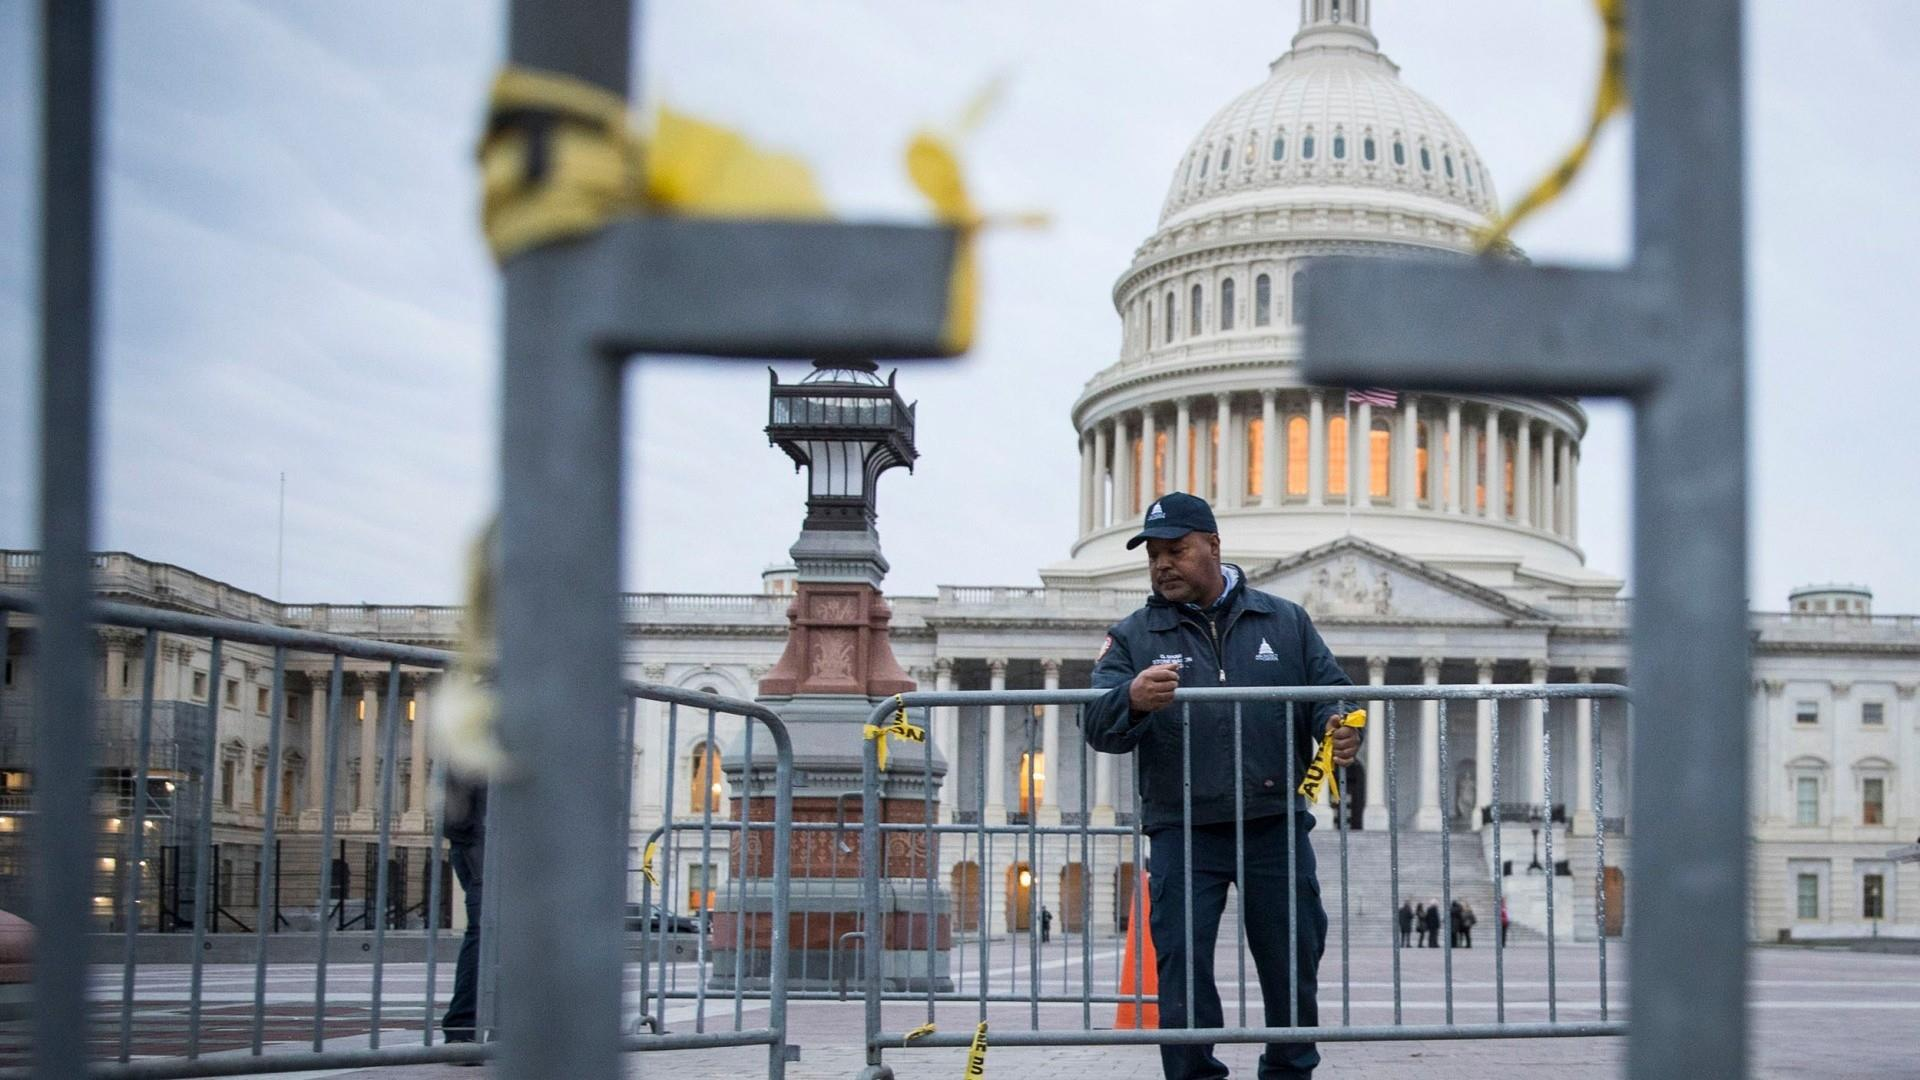 Negotiators reach 'agreement in principle' to fund border security, prevent another shutdown